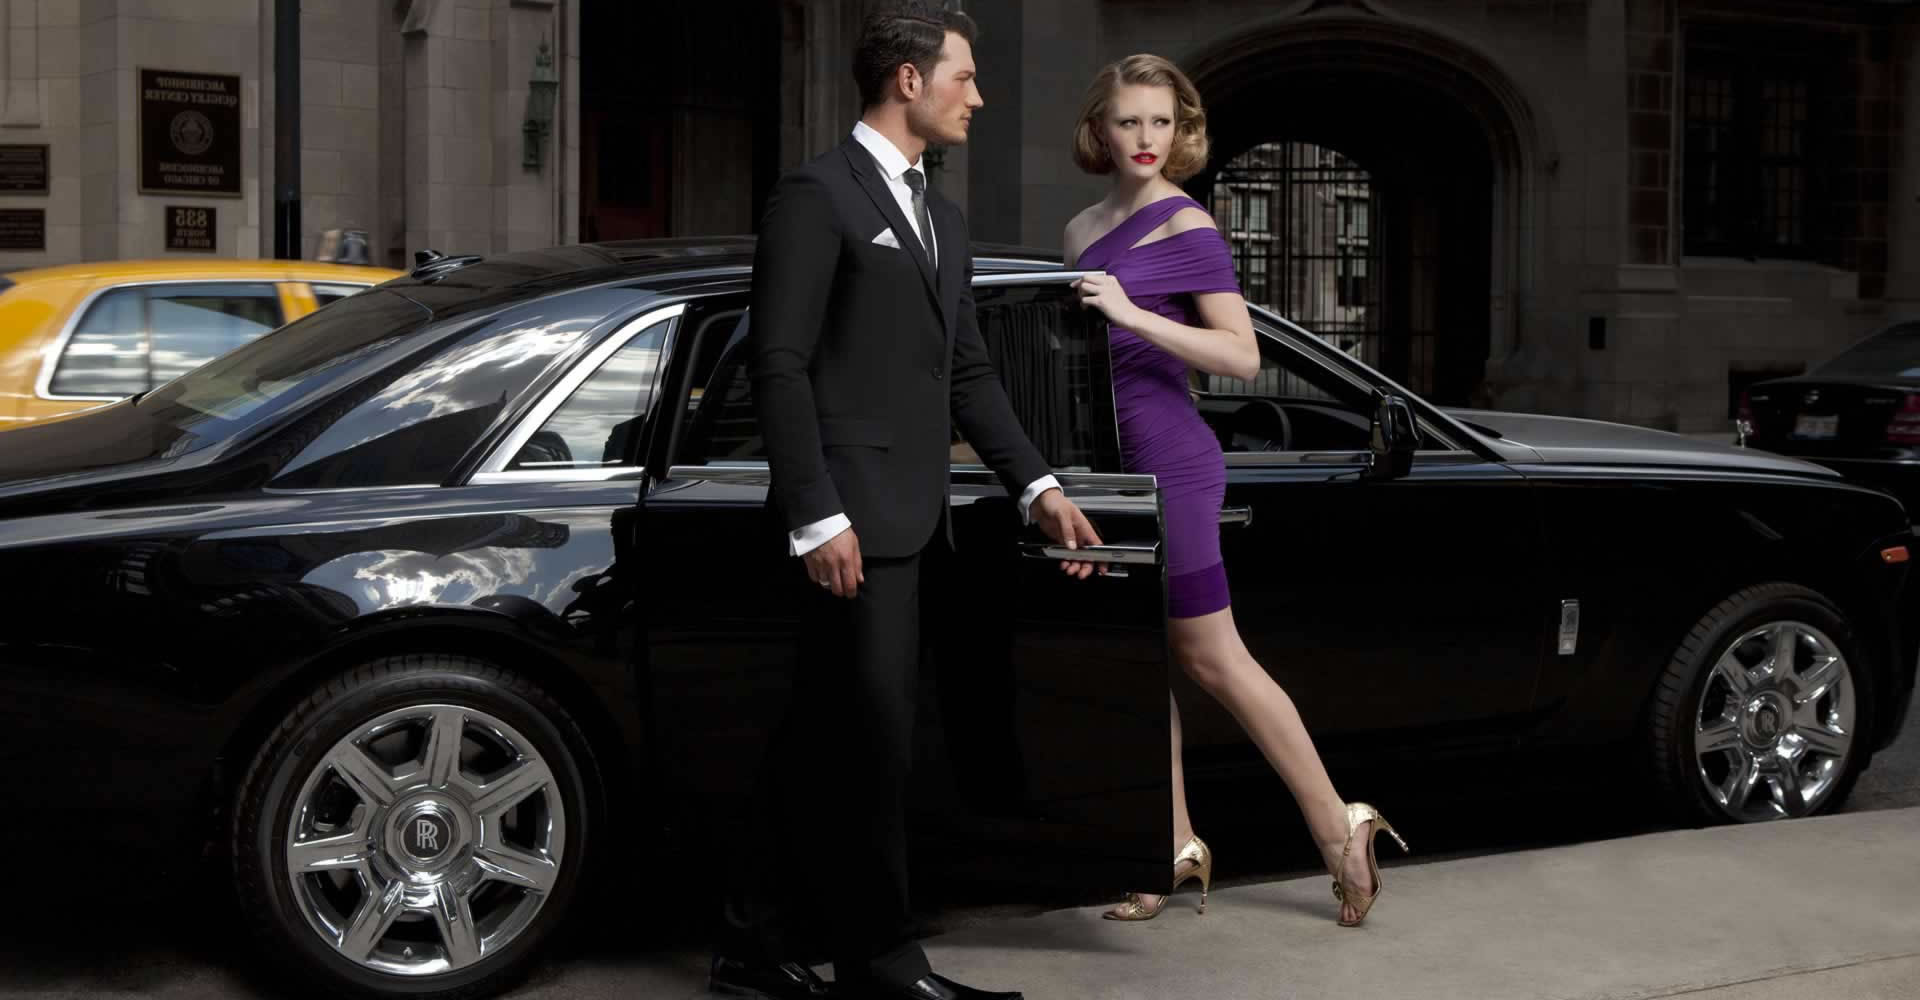 rolls royce and limo hire service